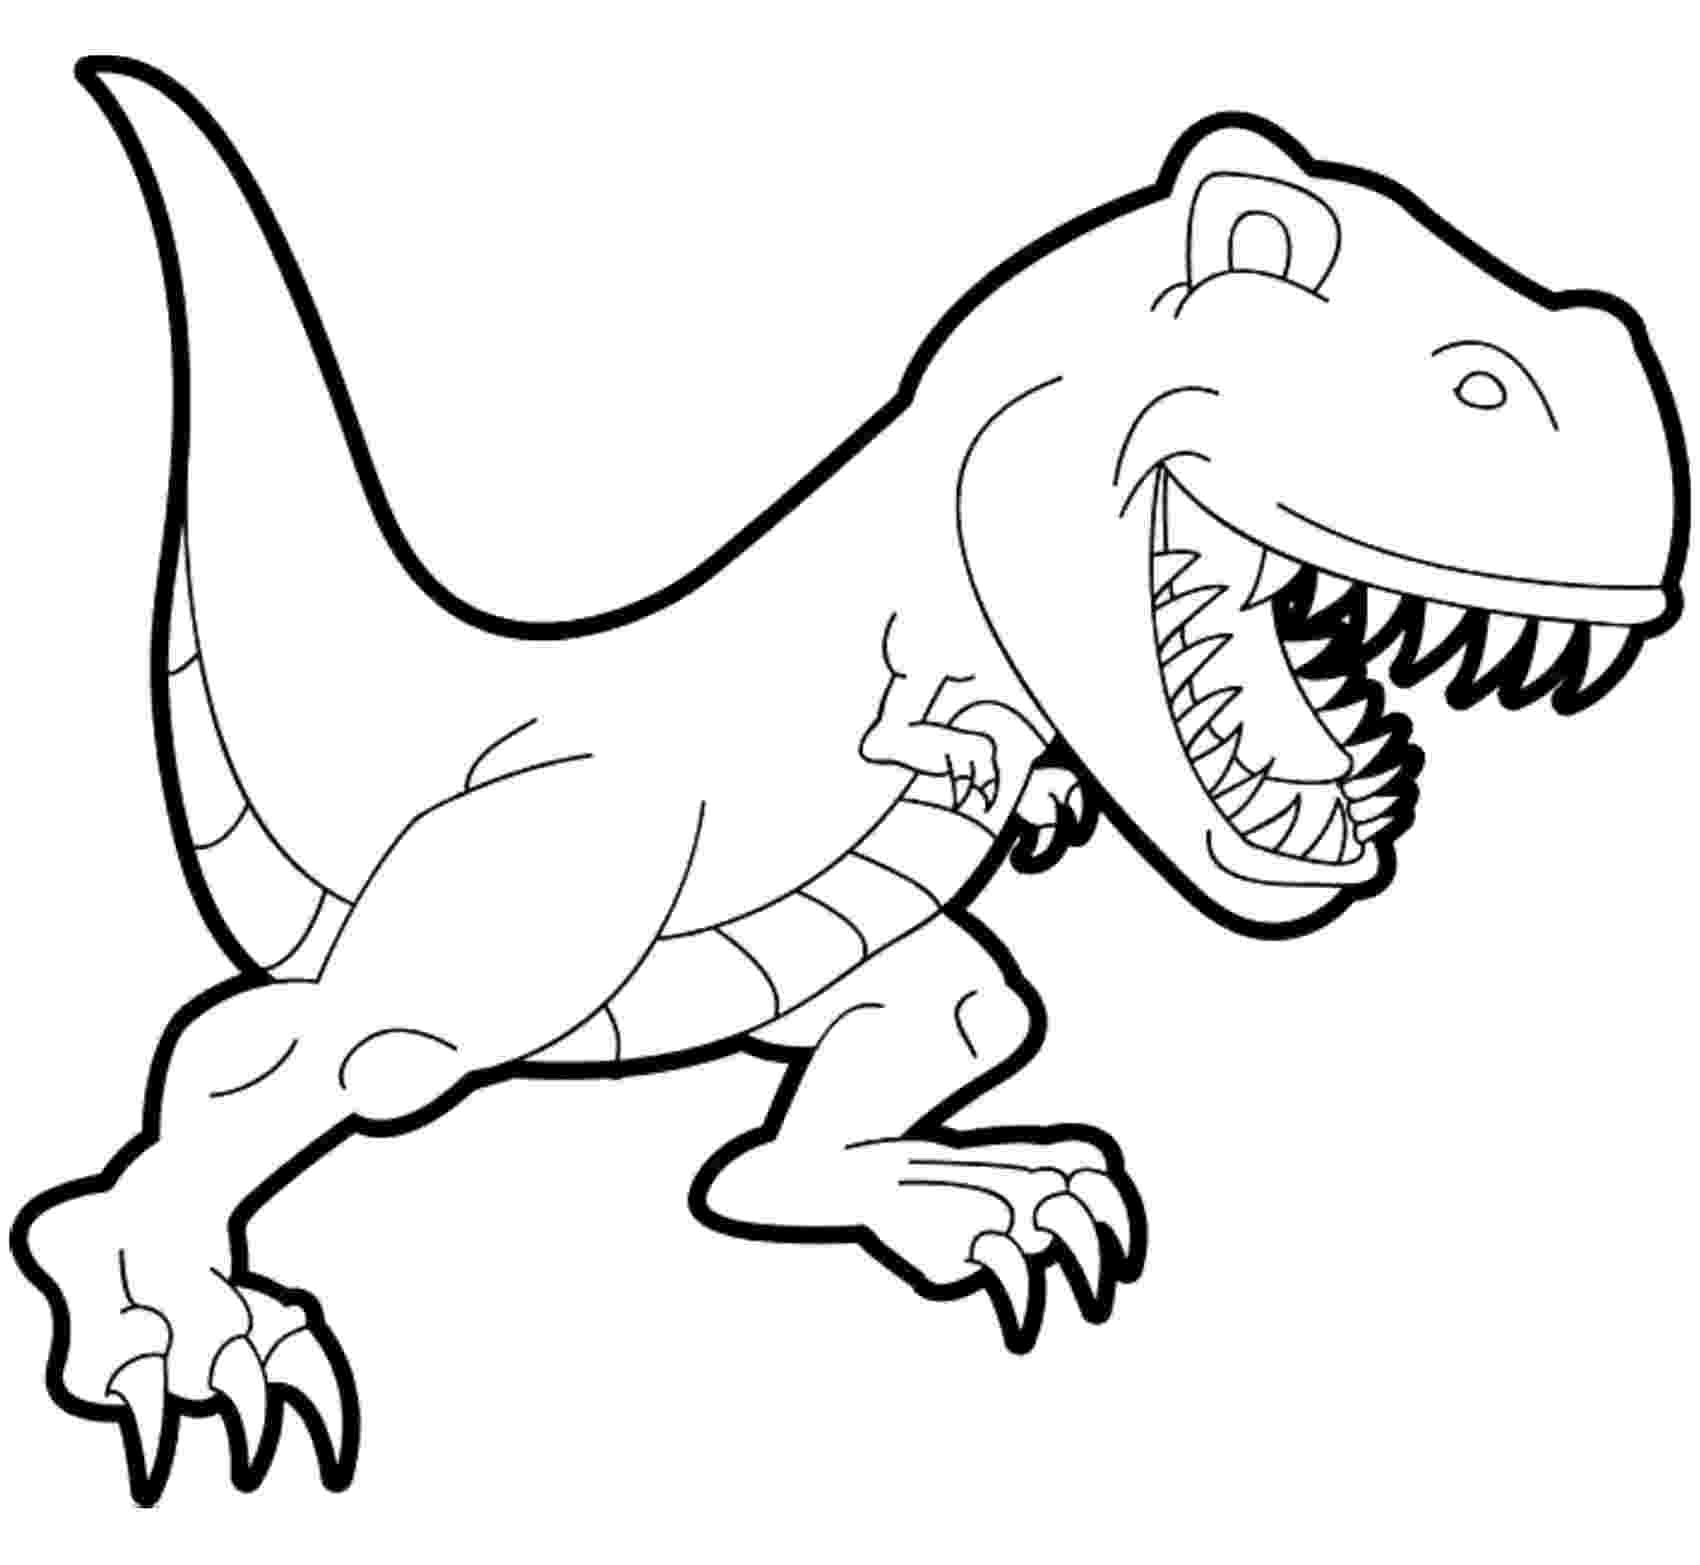 dinosaur for coloring dinosaurs free to color for kids tyrannosaur rex cartoon dinosaur for coloring